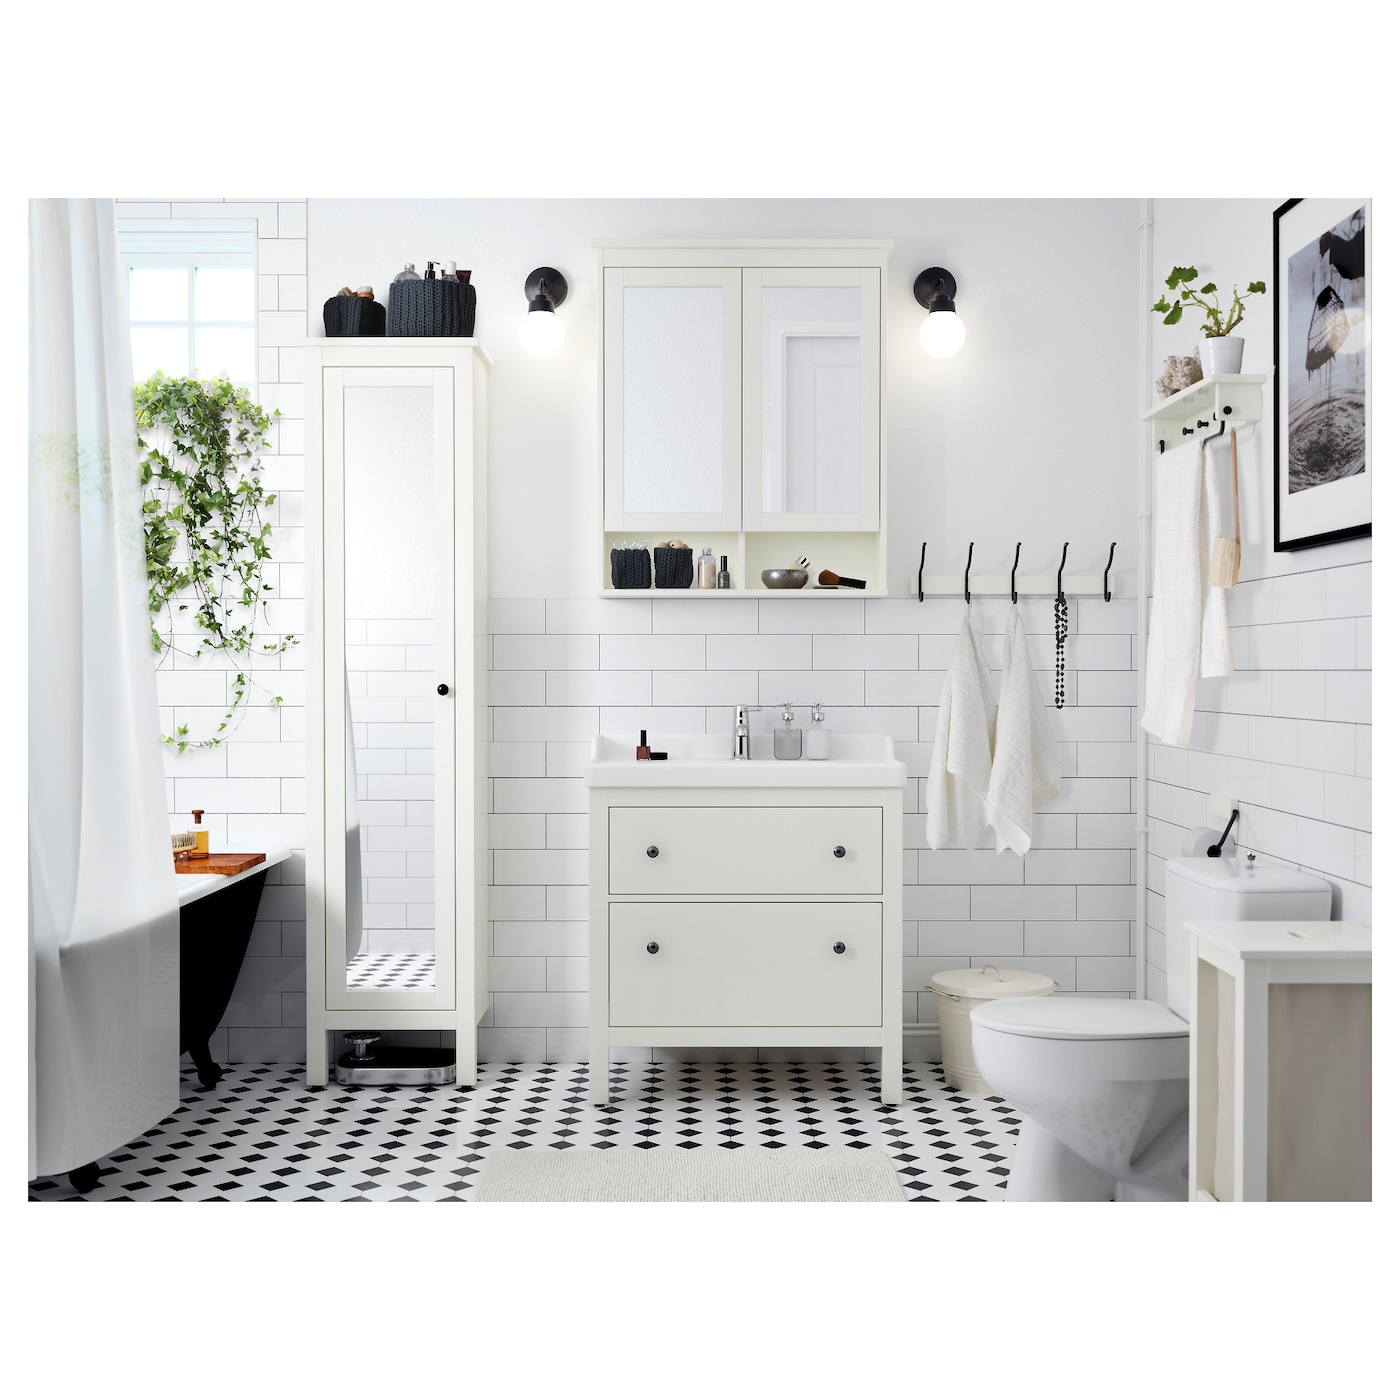 Hemnes high cabinet with mirror door white 49x31x200 cm ikea for Meubles salle de bain ikea godmorgon